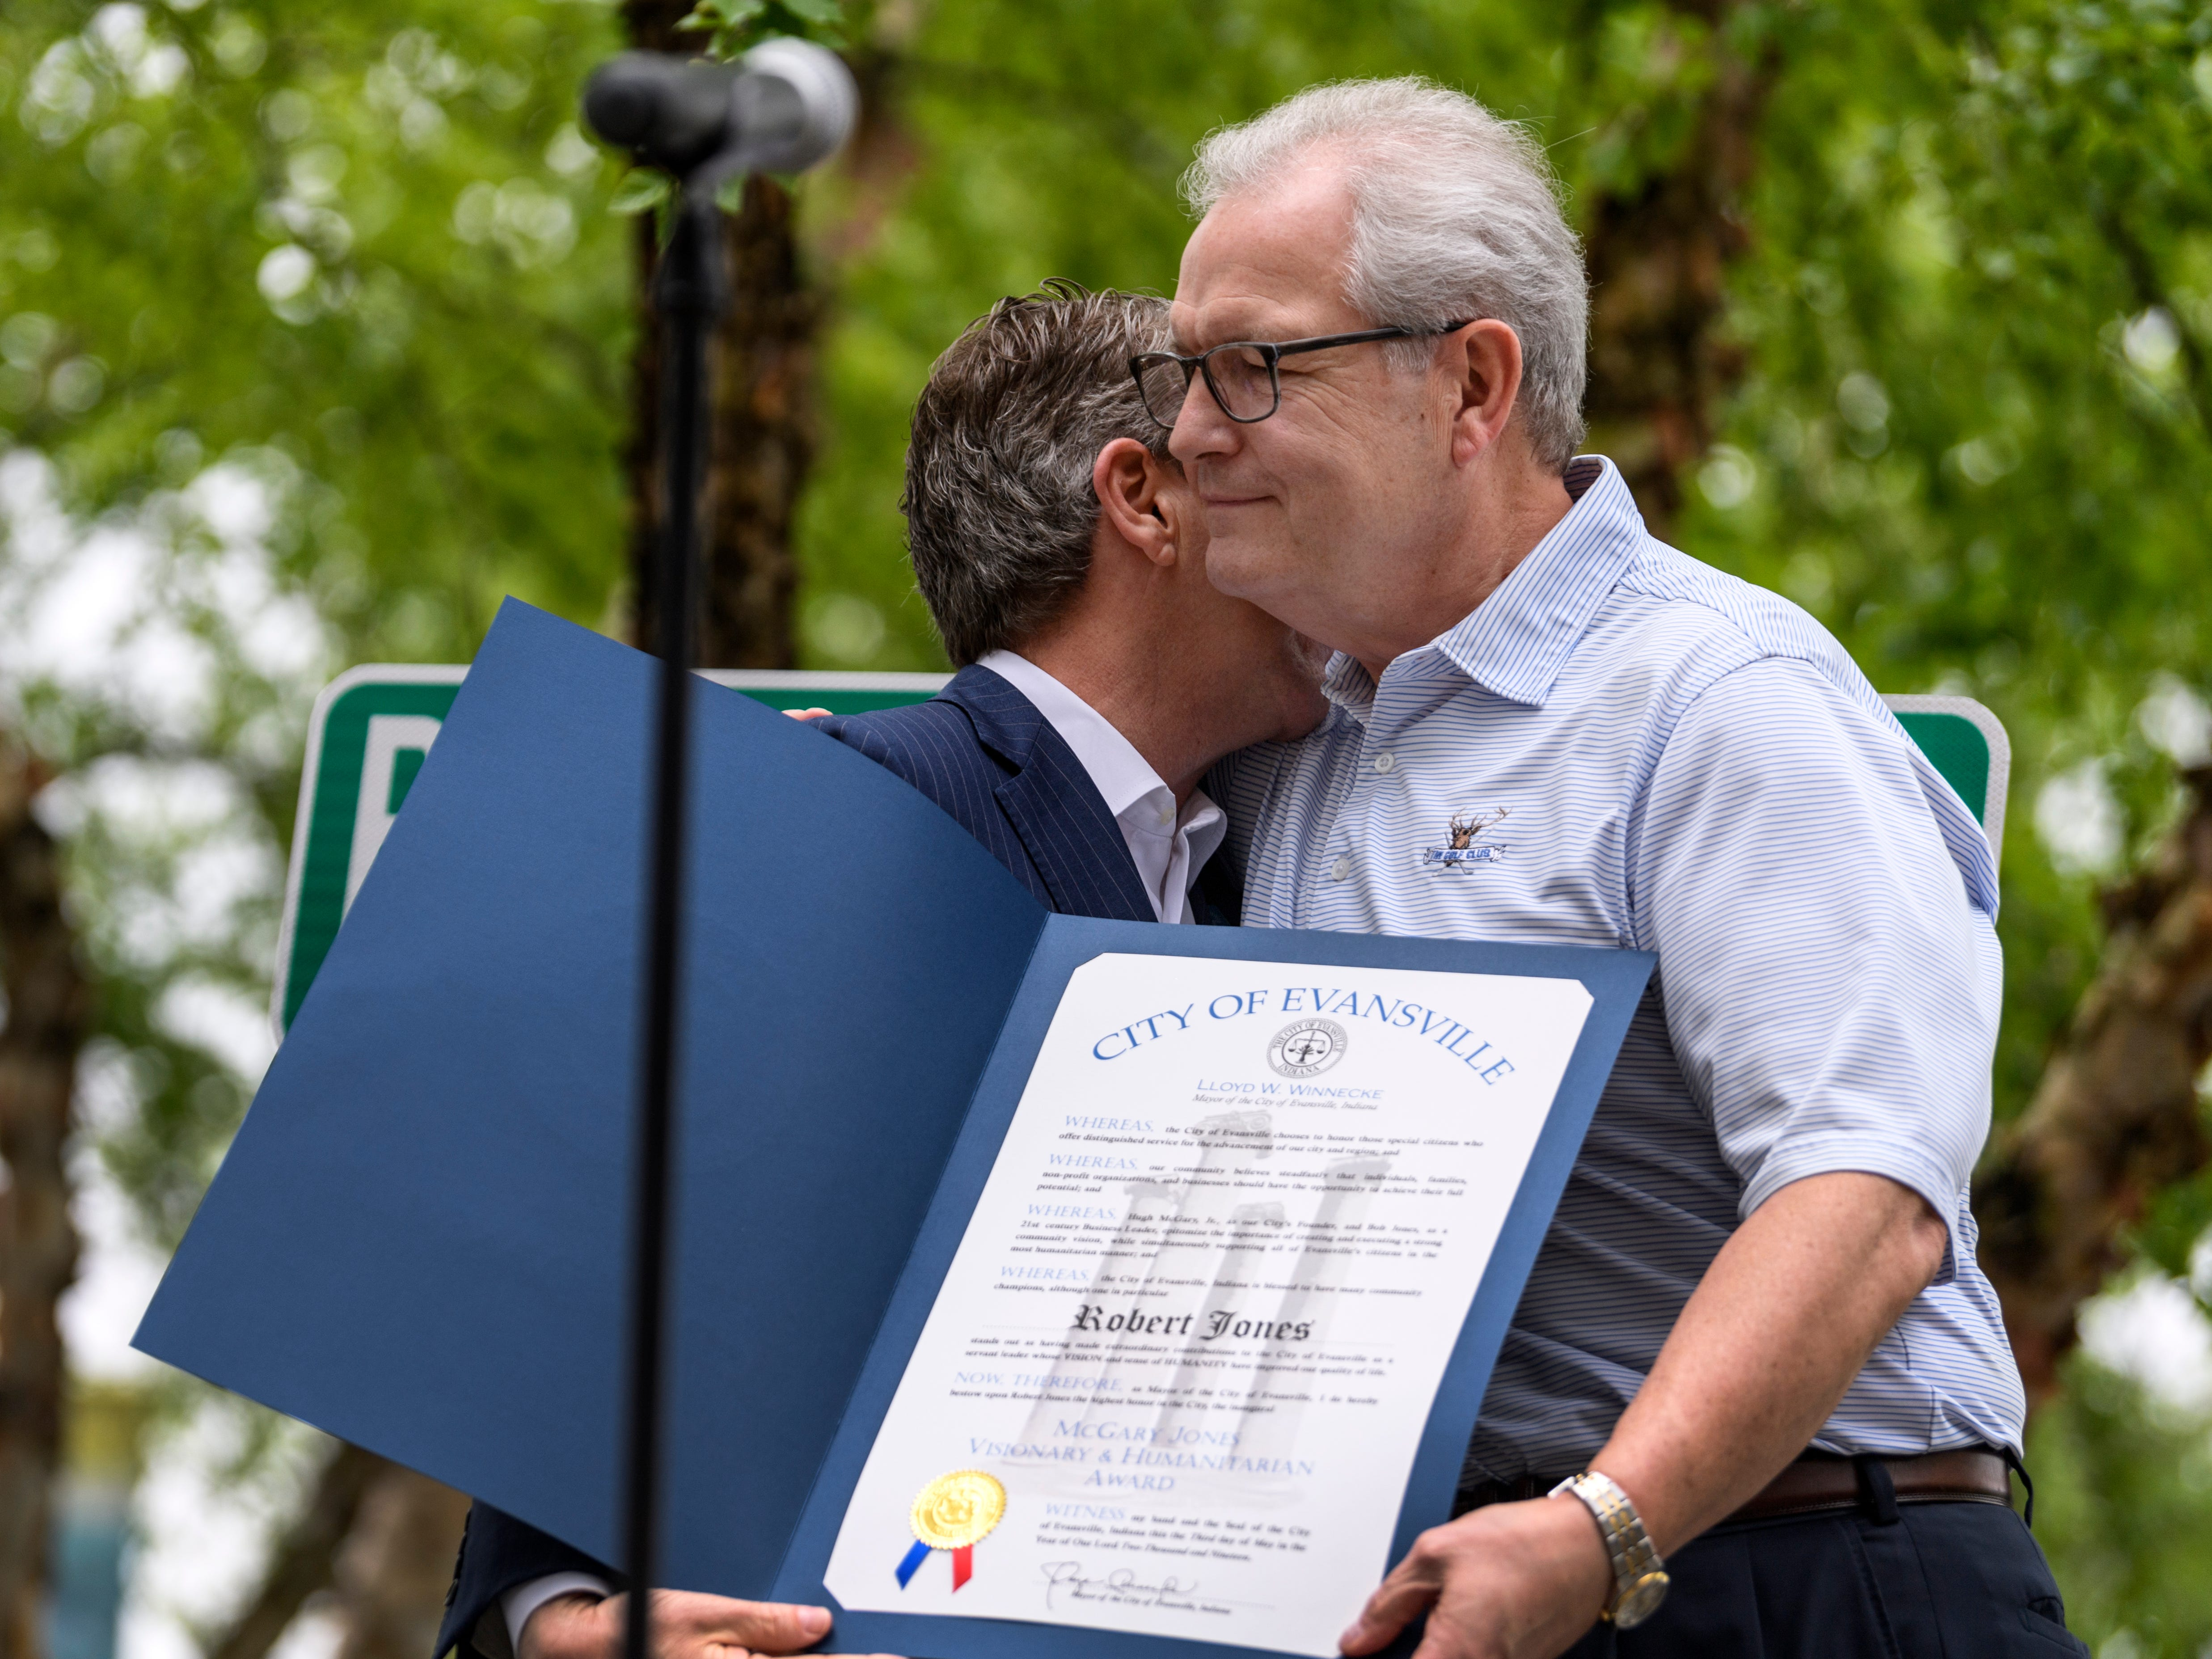 Mayor Lloyd Winnecke, left, embraces Bob Jones, right, Old National's retiring chief executive officer, during a farewell party held outside of Old National Bank in downtown Evansville, Ind., Friday, May 3, 2019. Mayor Winnecke proclaimed CEO Jones as the first recipient and namesake of the inaugural McGary Jones Visionary & Humanitarian Award.